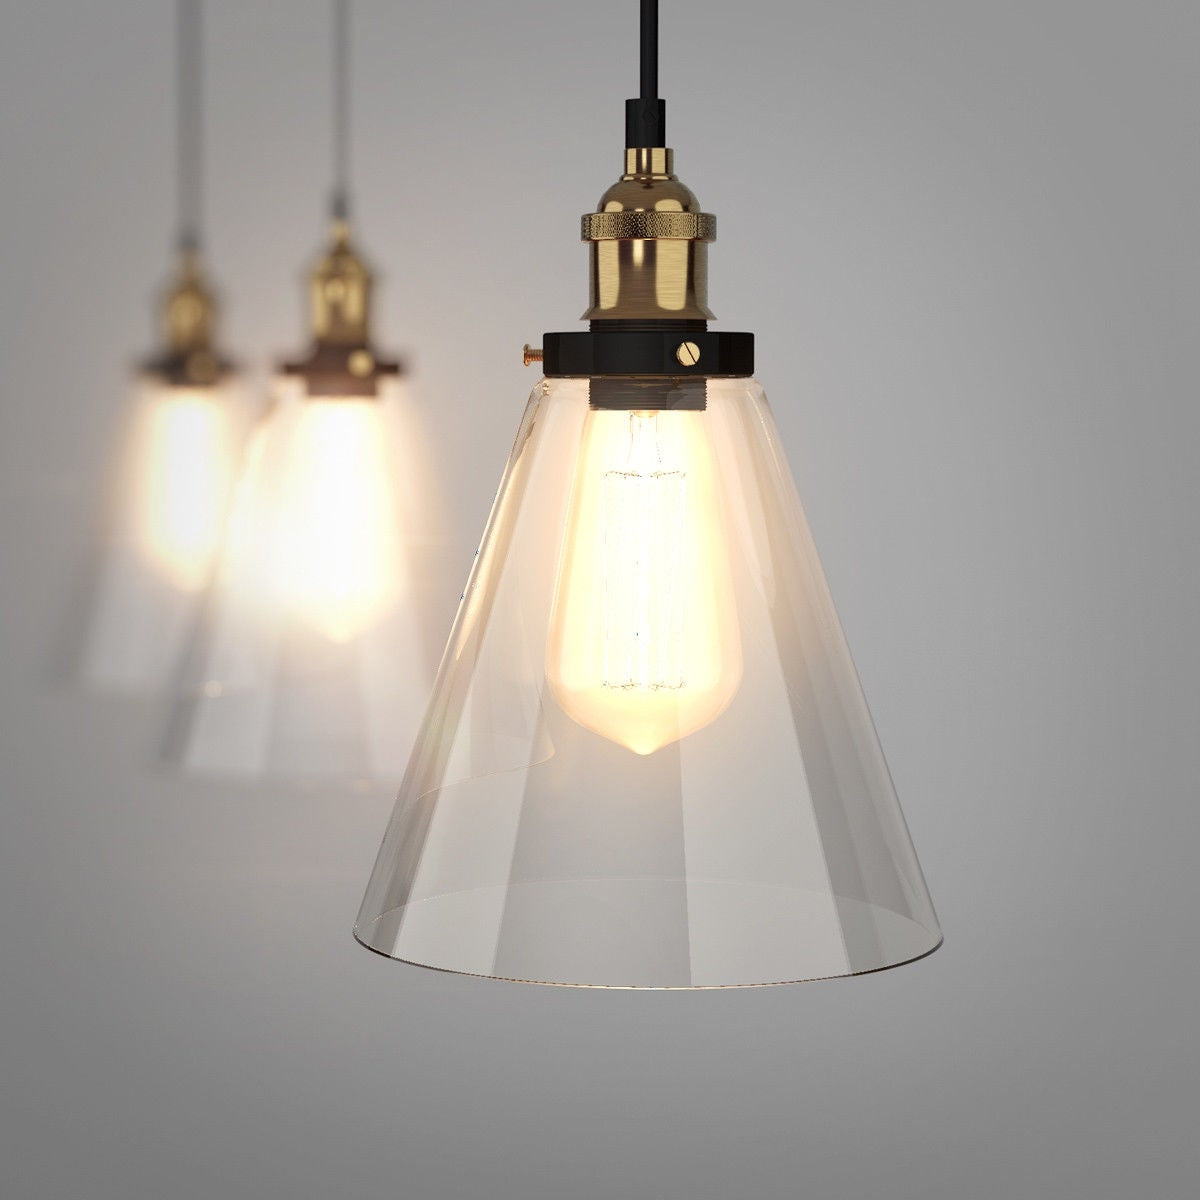 Vintage Edison 1-Light Bowl Pendants for Well-liked Gymax Vintage Style Industrial Edison Ceiling Pendant Glass Hanging Light  1-Light Bulb - As Pic